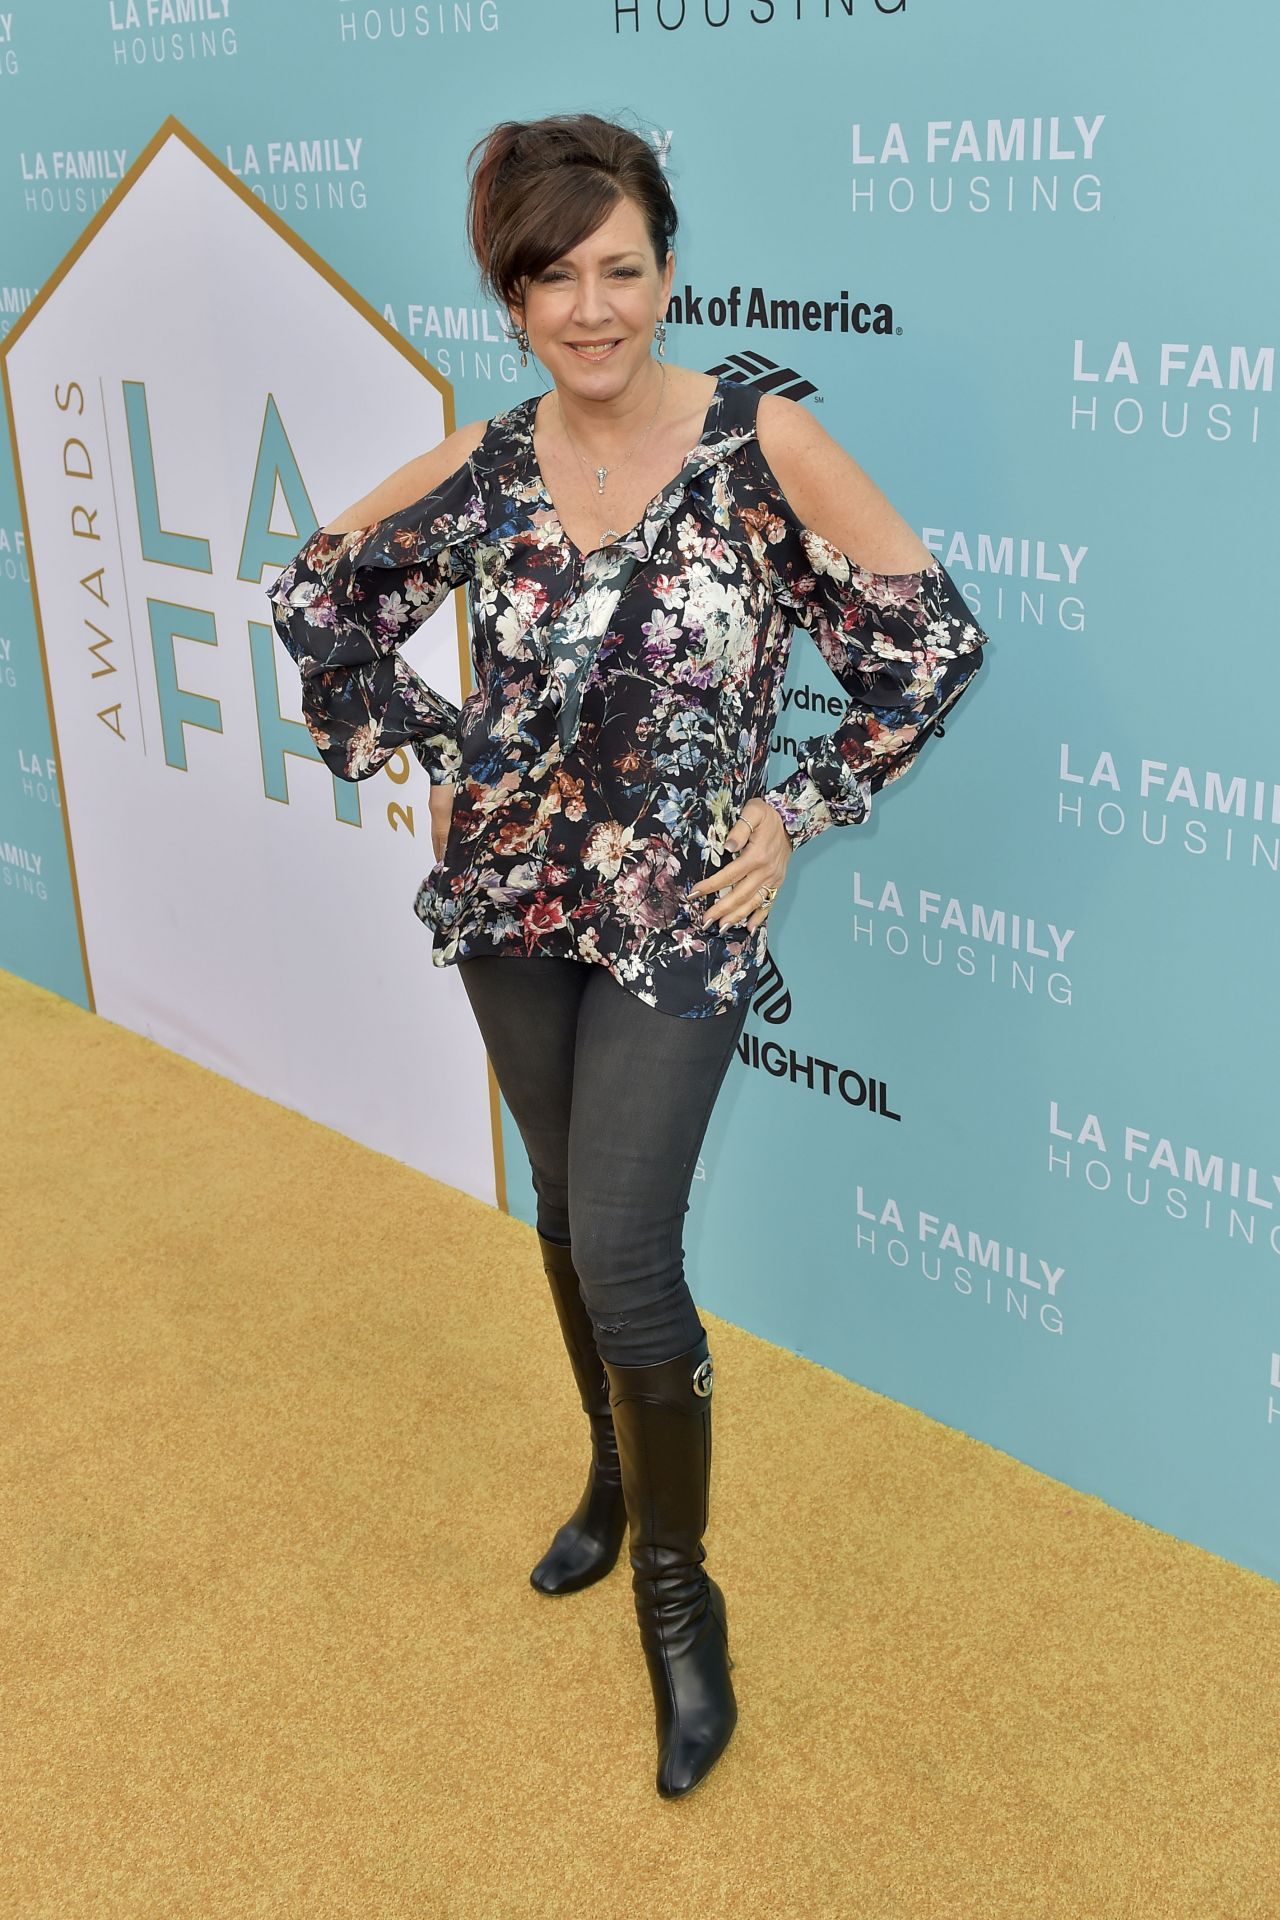 Joely Fisher - LA Family Housing Awards 04/27/2017